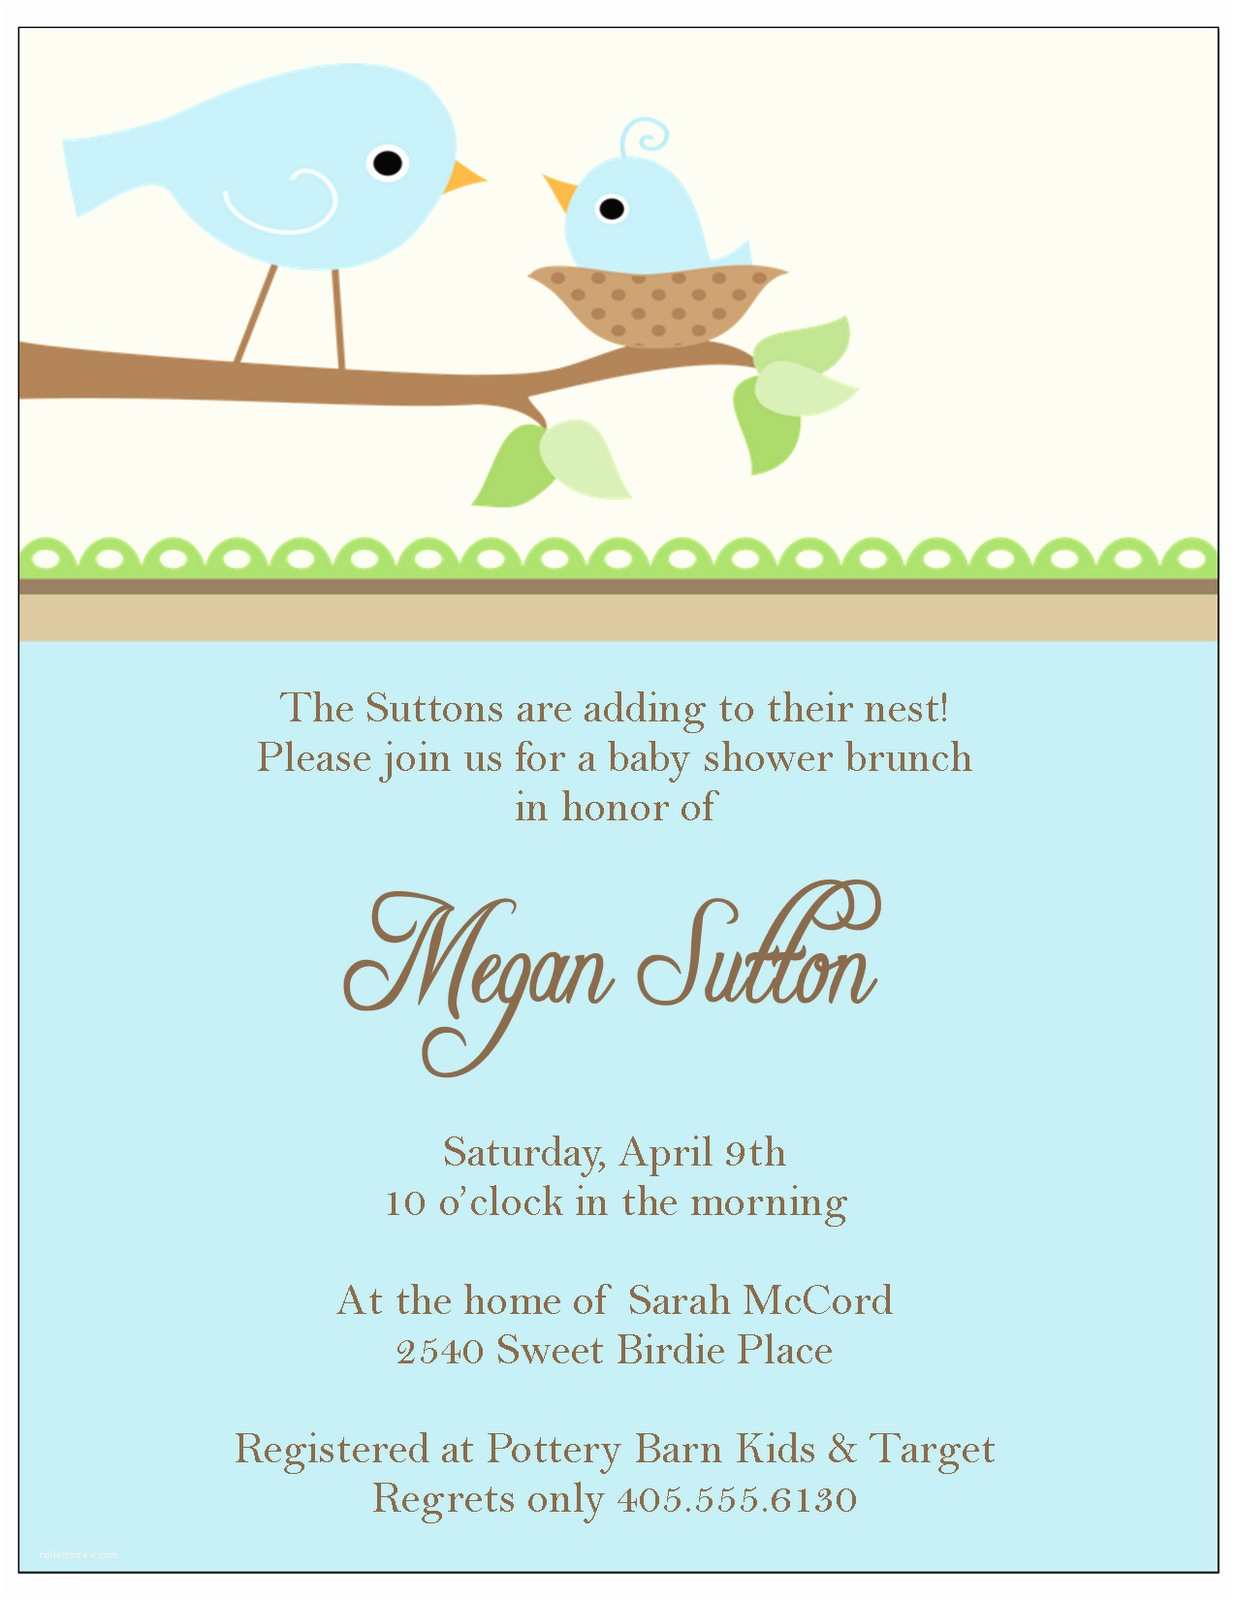 Free Baby Shower Invitation Templates Template Baby Shower Invitation Cards